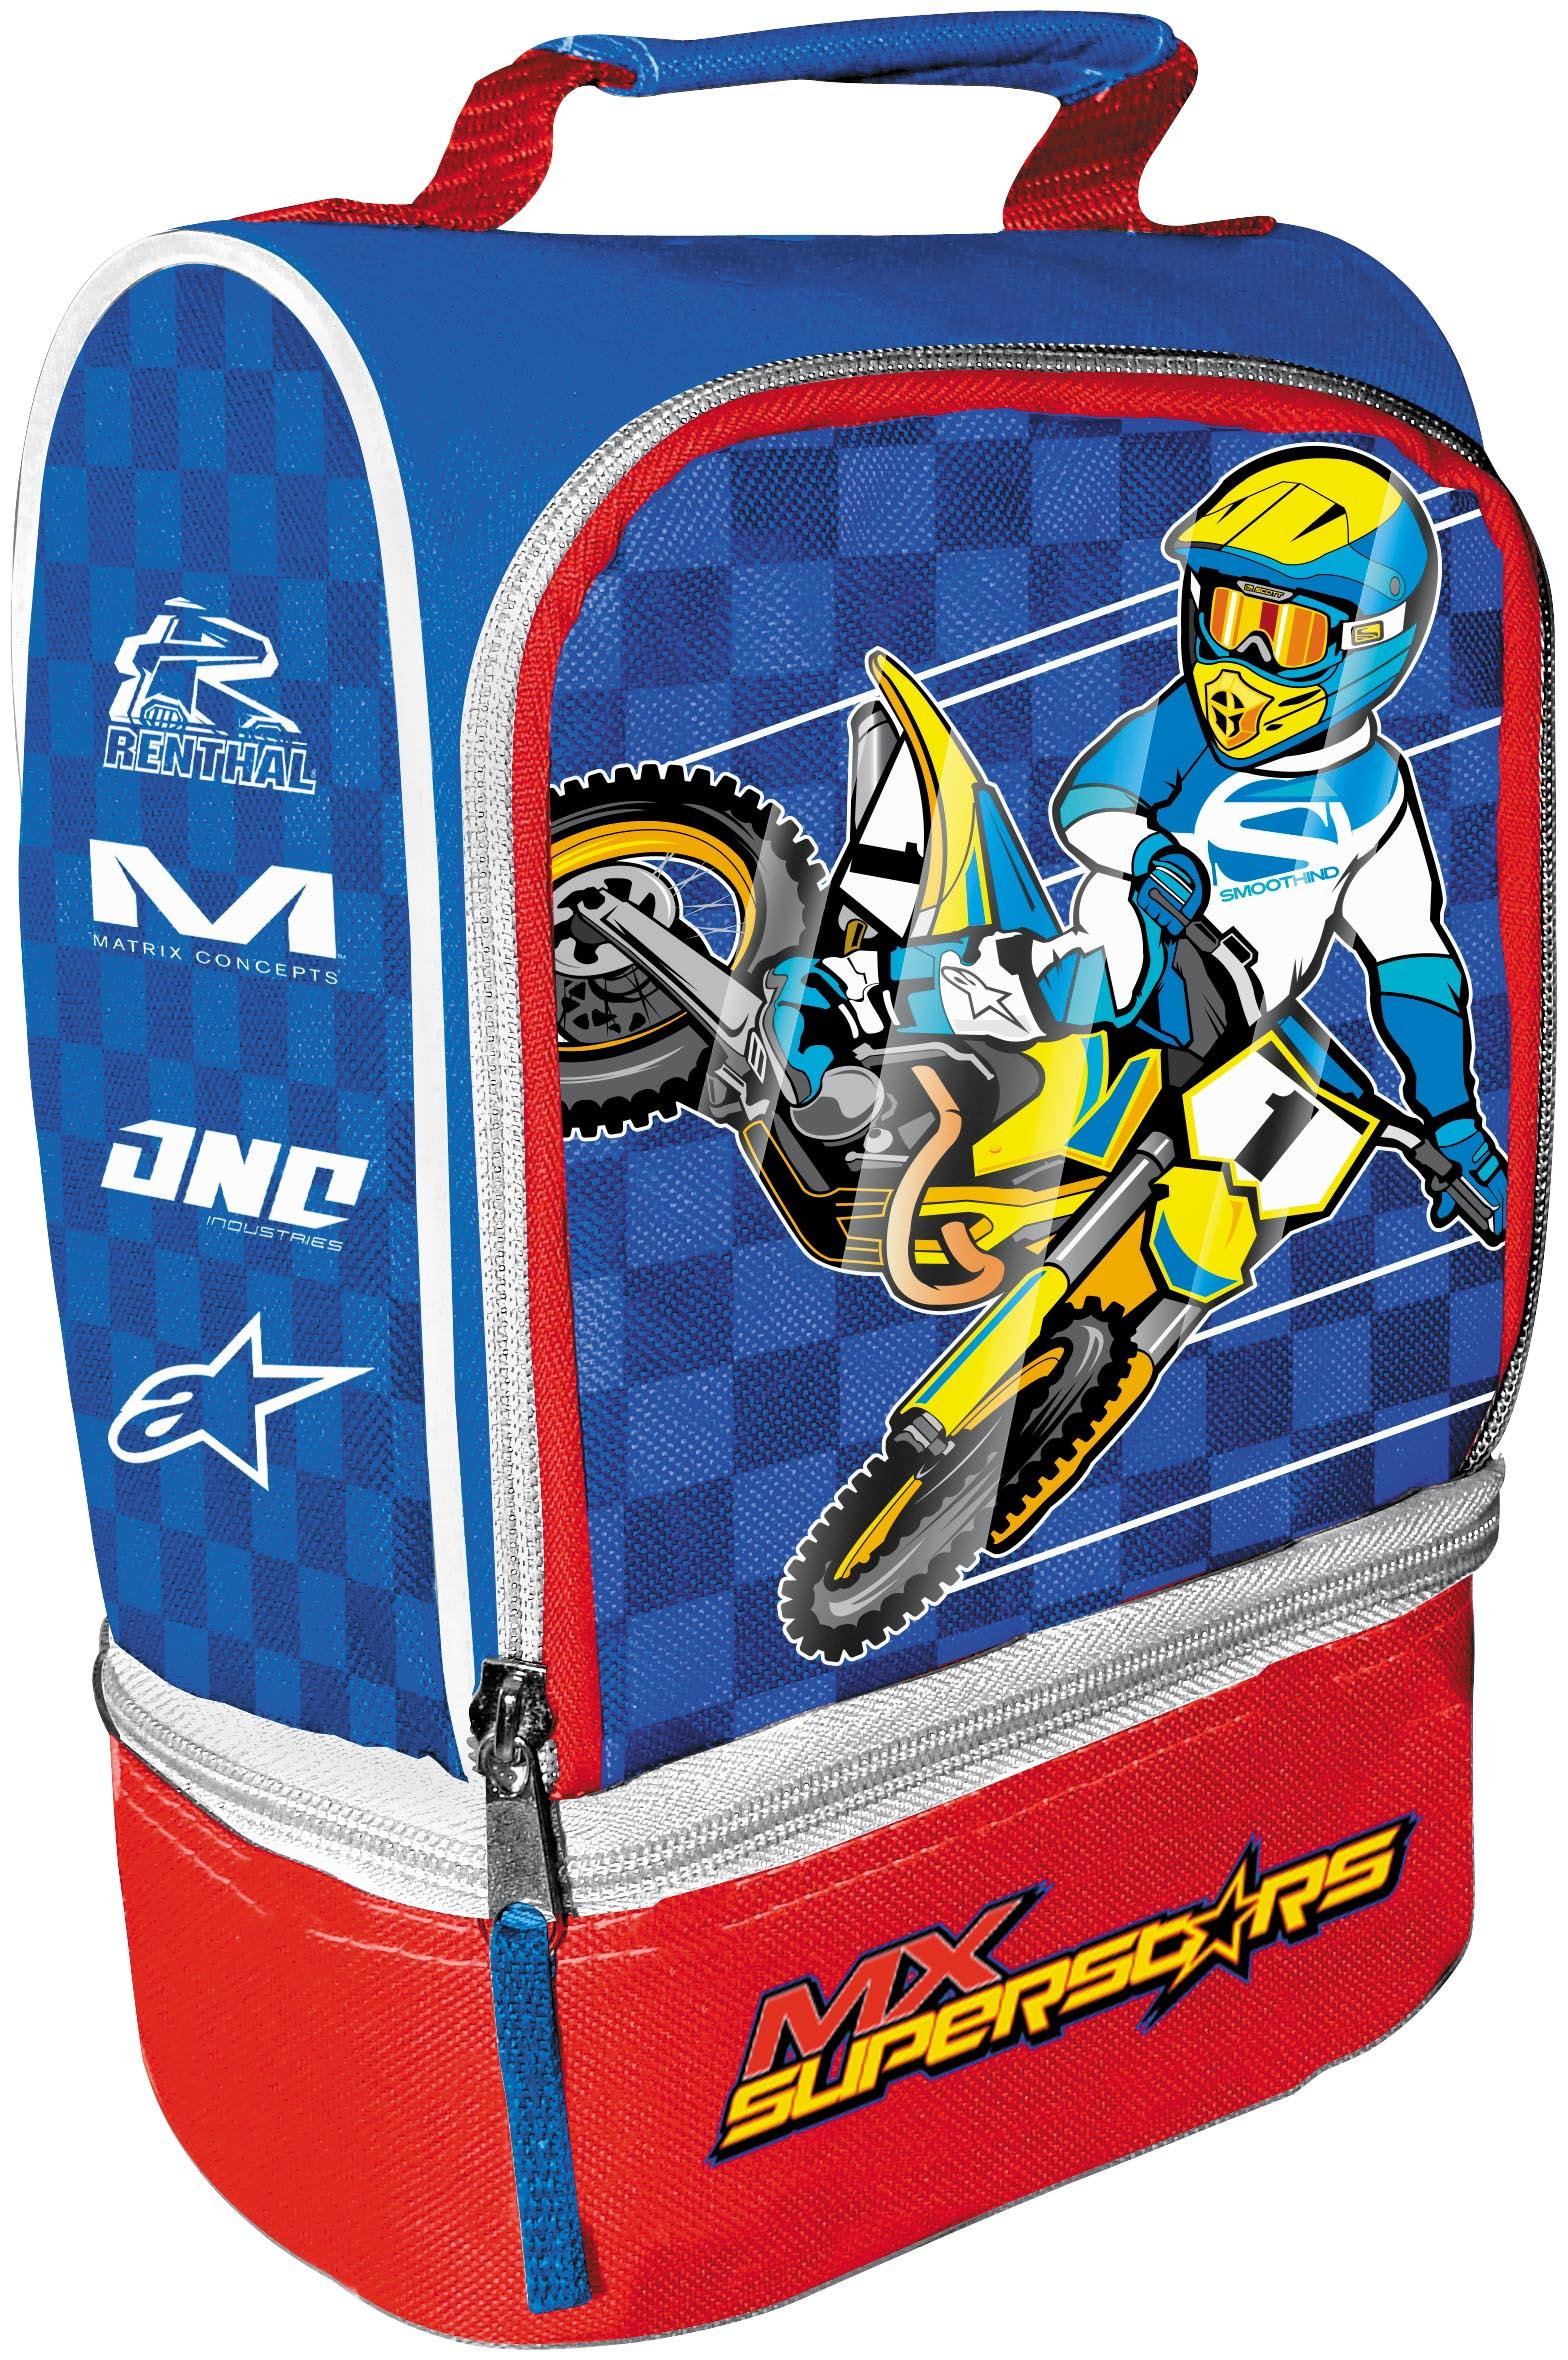 Smooth Industries MX Superstars Lunch Box?